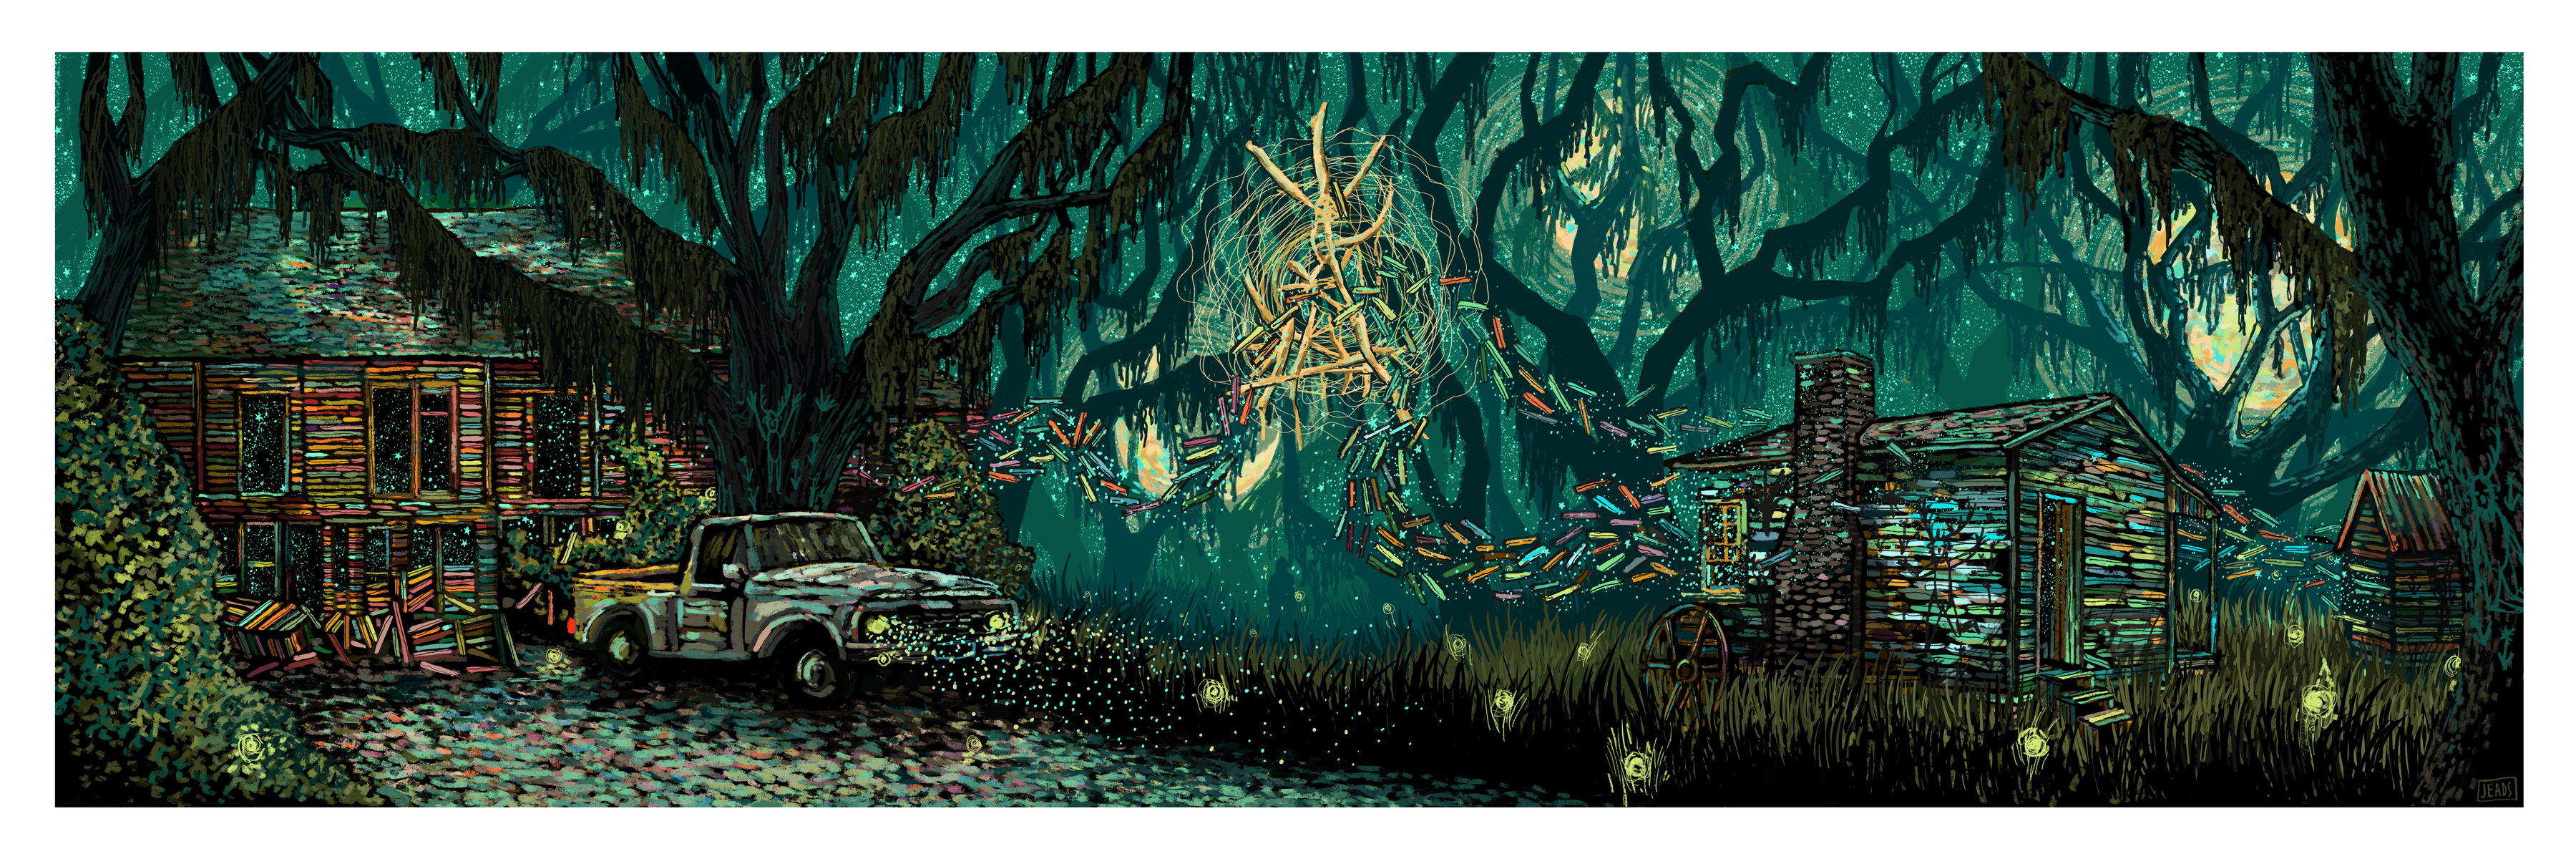 """All Around Us, Everywhere"" by James R Eads.  12"" x 36"" Giclee.  Timed edition S/N.  $40"